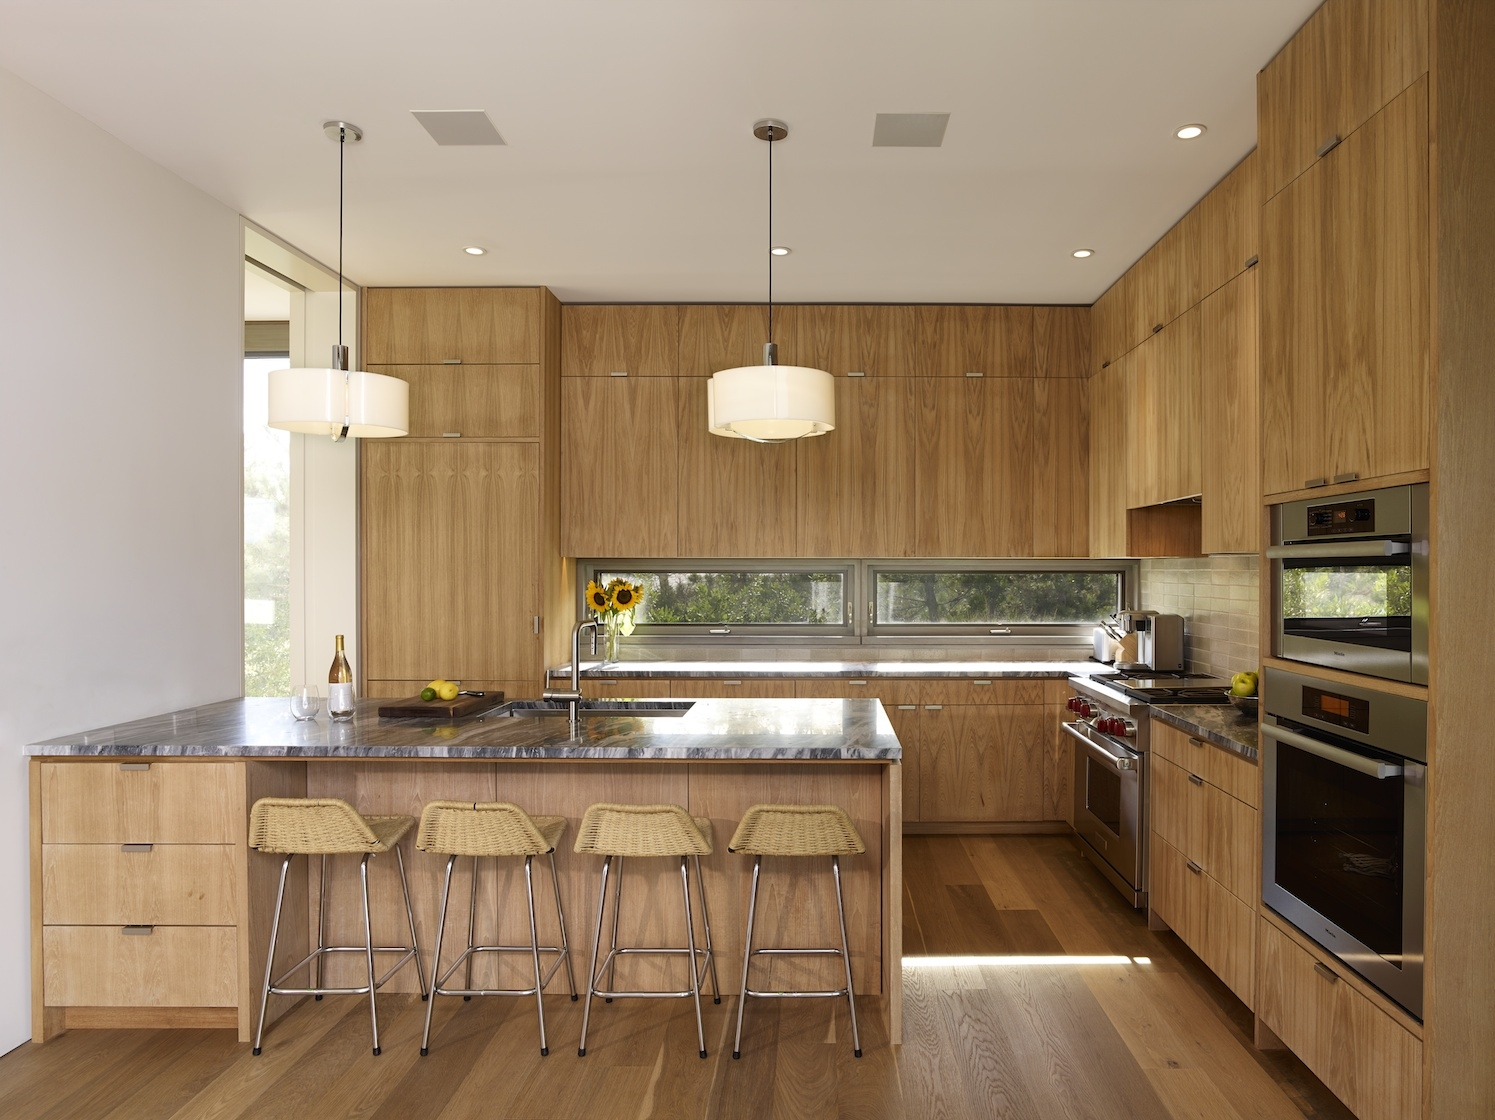 Amagansett, NY modern house kitchen